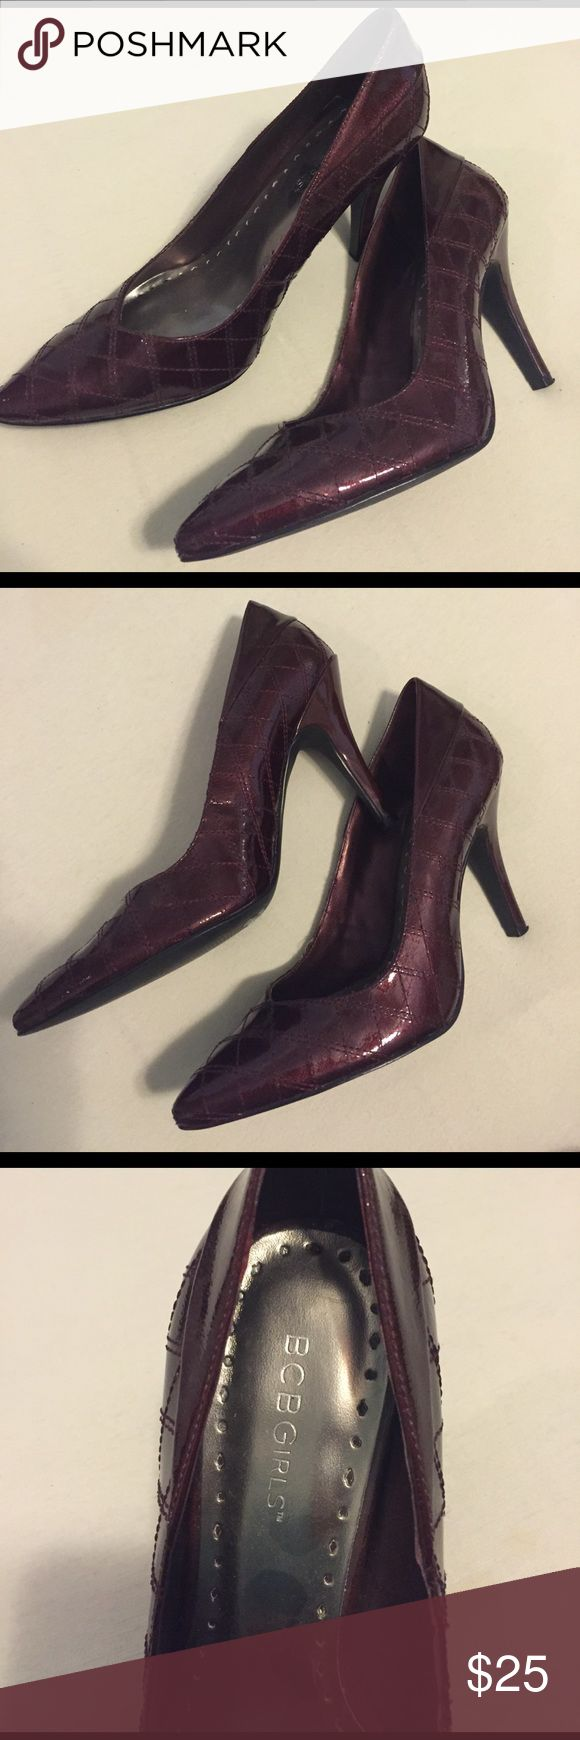 BCBGirls Patent Maroon Pumps BCBGirls Patent Maroon Pumps---never worn--bought for a friend's wedding and went with different outfit. The color is a sort of shimmery maroon/burgundy color. BCBGirls Shoes Heels